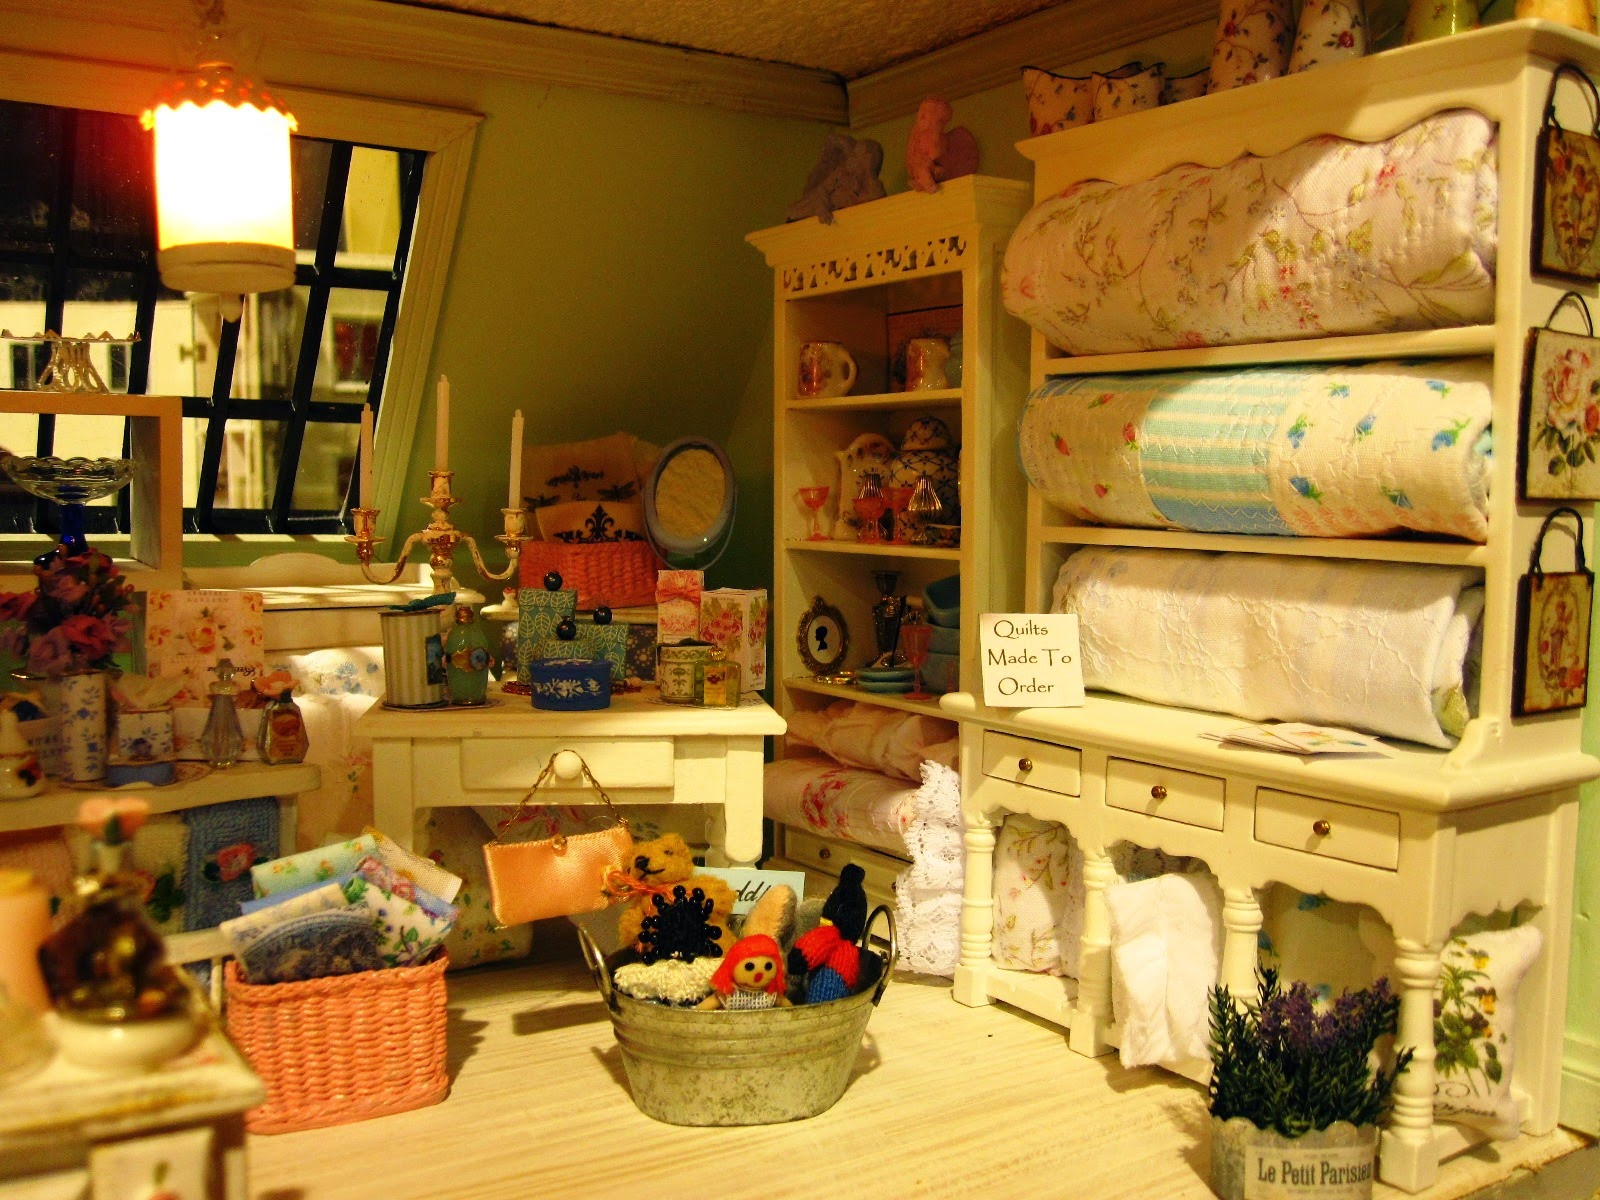 Modern miniature shabby chic shop display of linens and quilts on cream shelves.